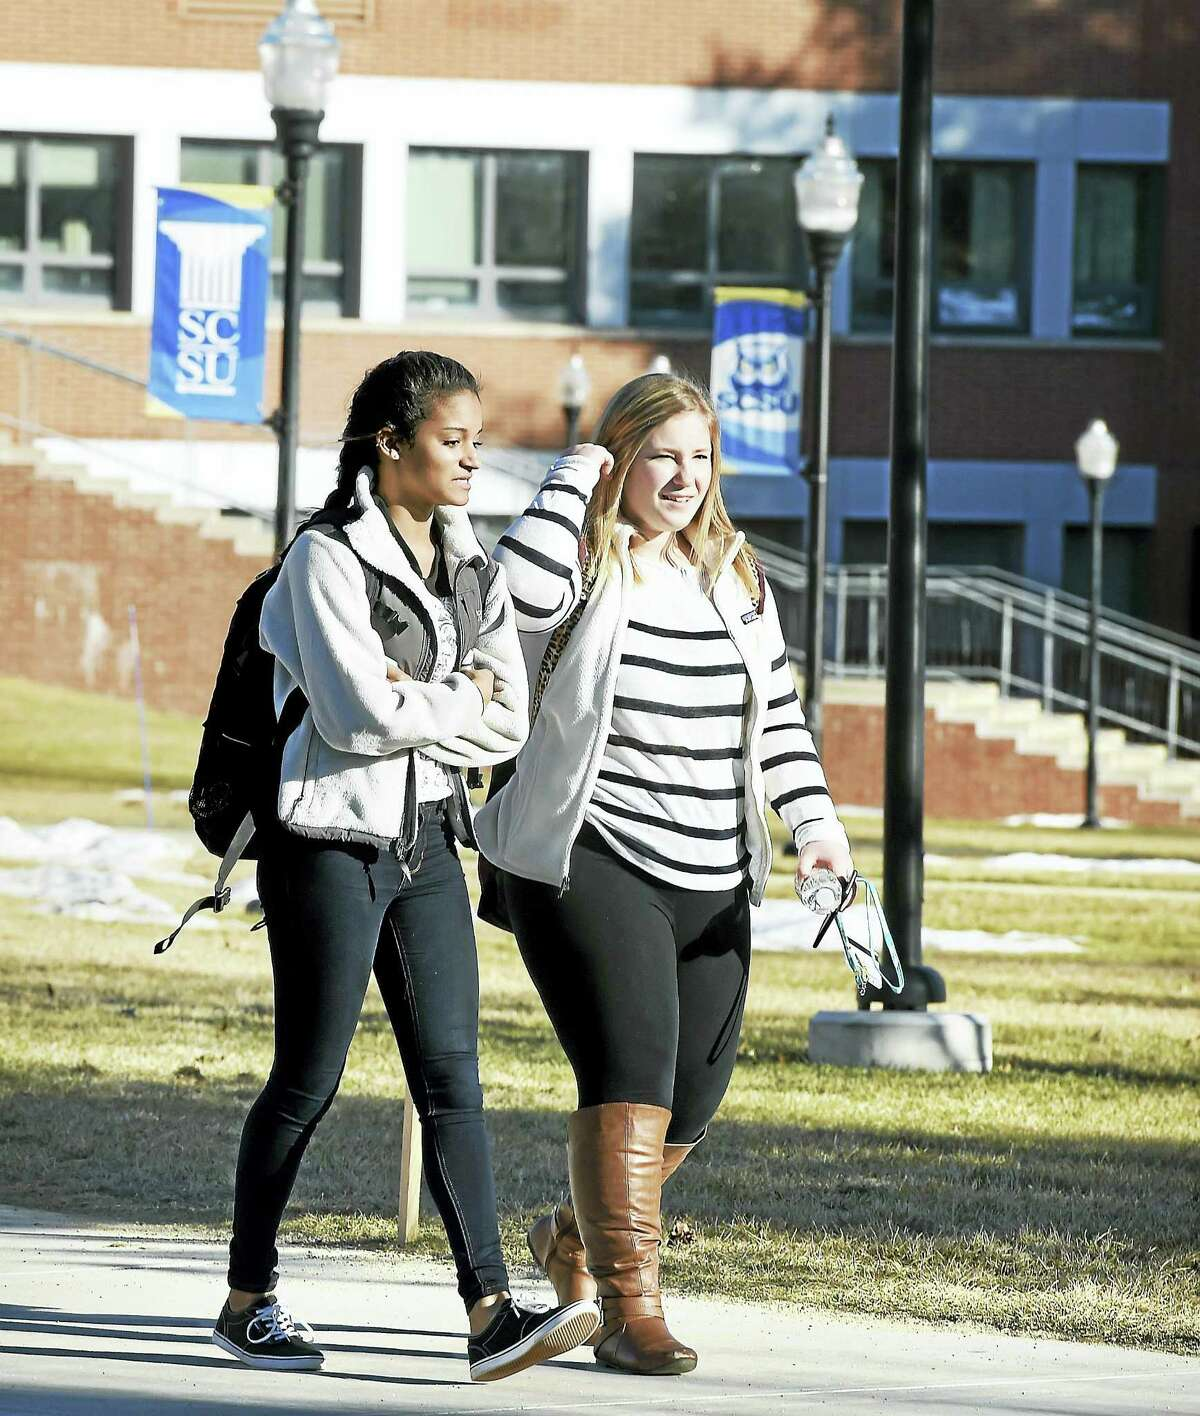 Students walk through the quad at Southern Connecticut State University in New Haven.